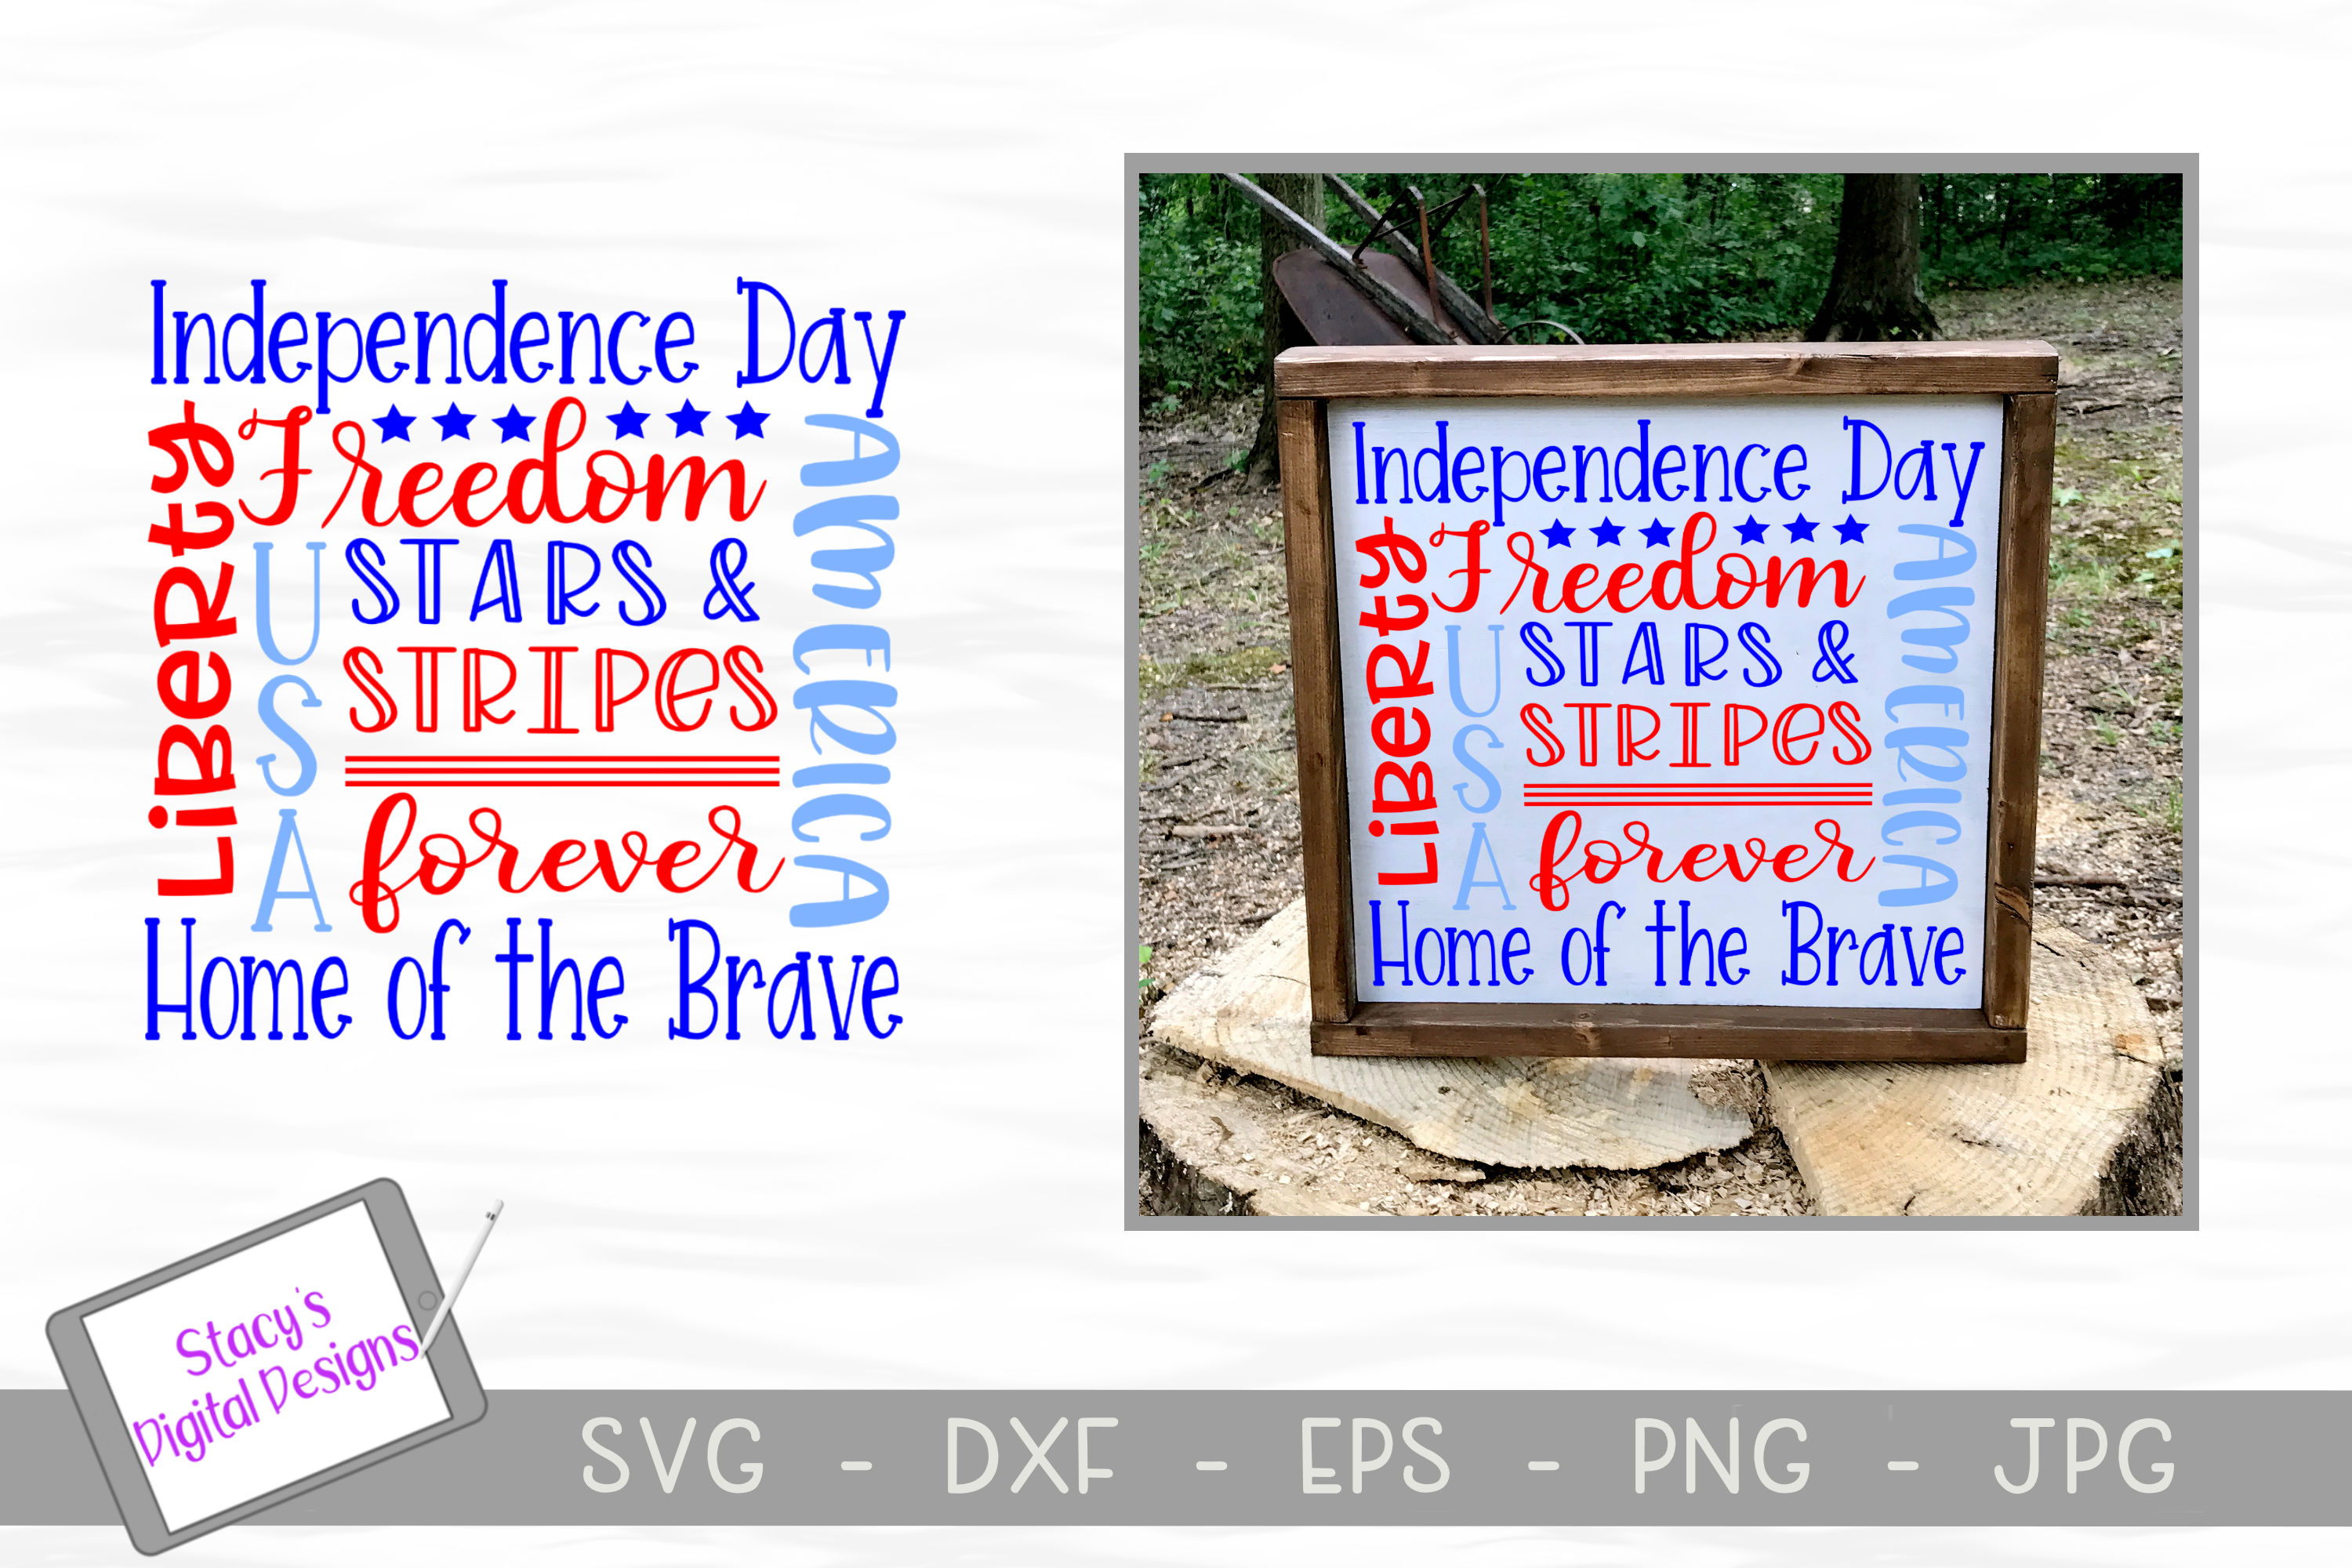 Download Free Patriotic Subway Art Svg Usa Graphic By Stacysdigitaldesigns for Cricut Explore, Silhouette and other cutting machines.